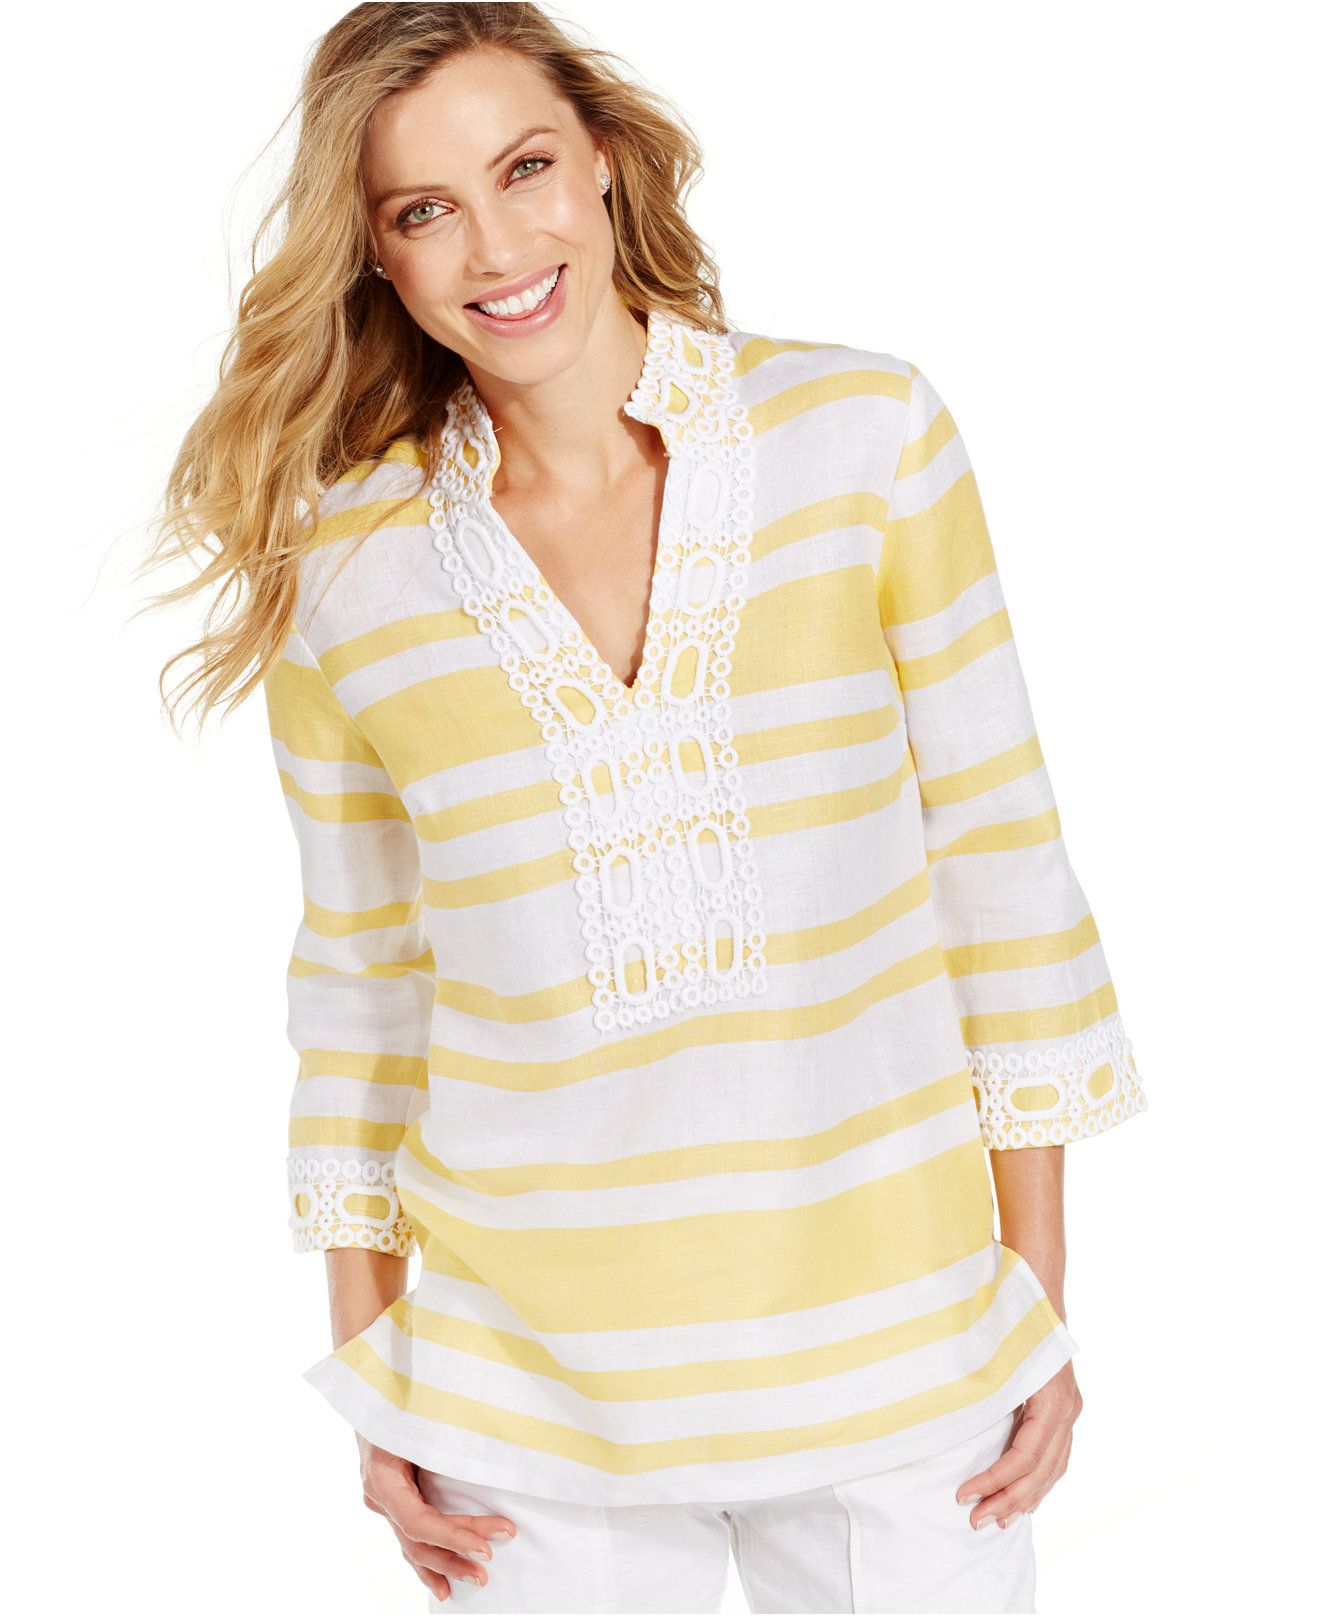 Charter Club Petite Embroidered Striped Linen Tunic - Tops - Petites -  Macy's